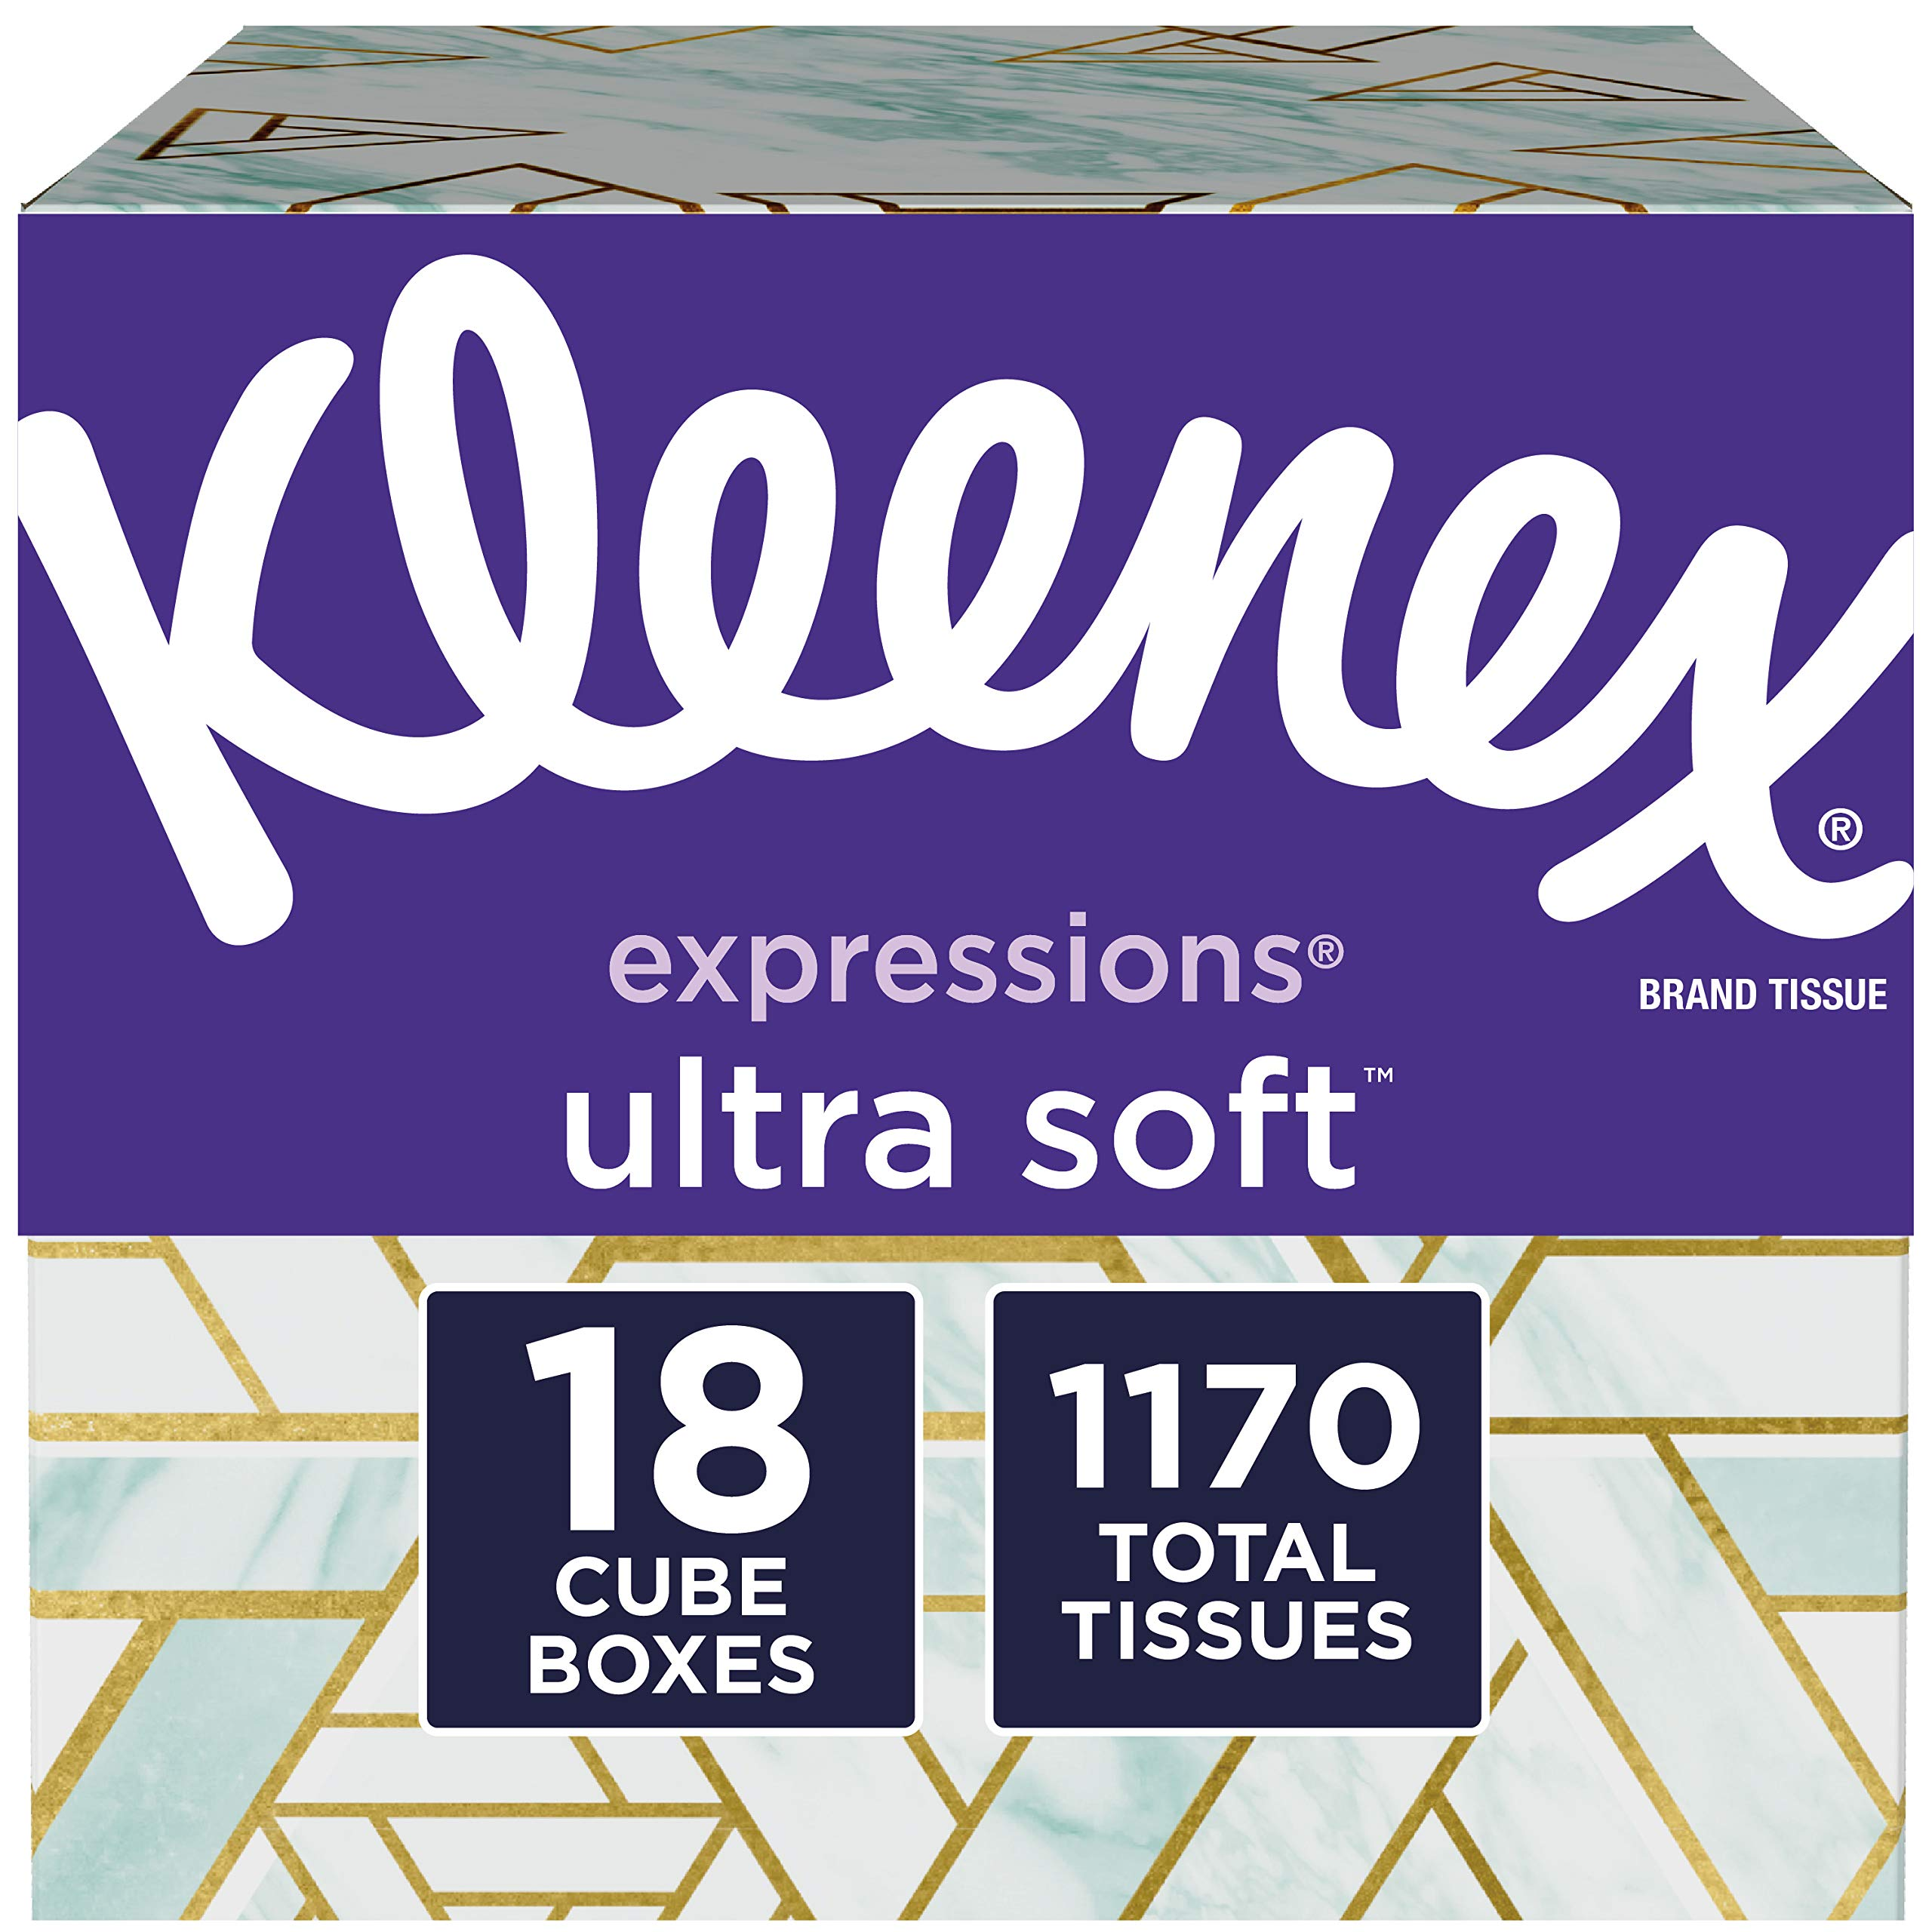 Kleenex Expressions Ultra Soft Facial Tissues, 18 Cube Boxes, 65 Tissuesper Box (1, 170 Tissues Total)